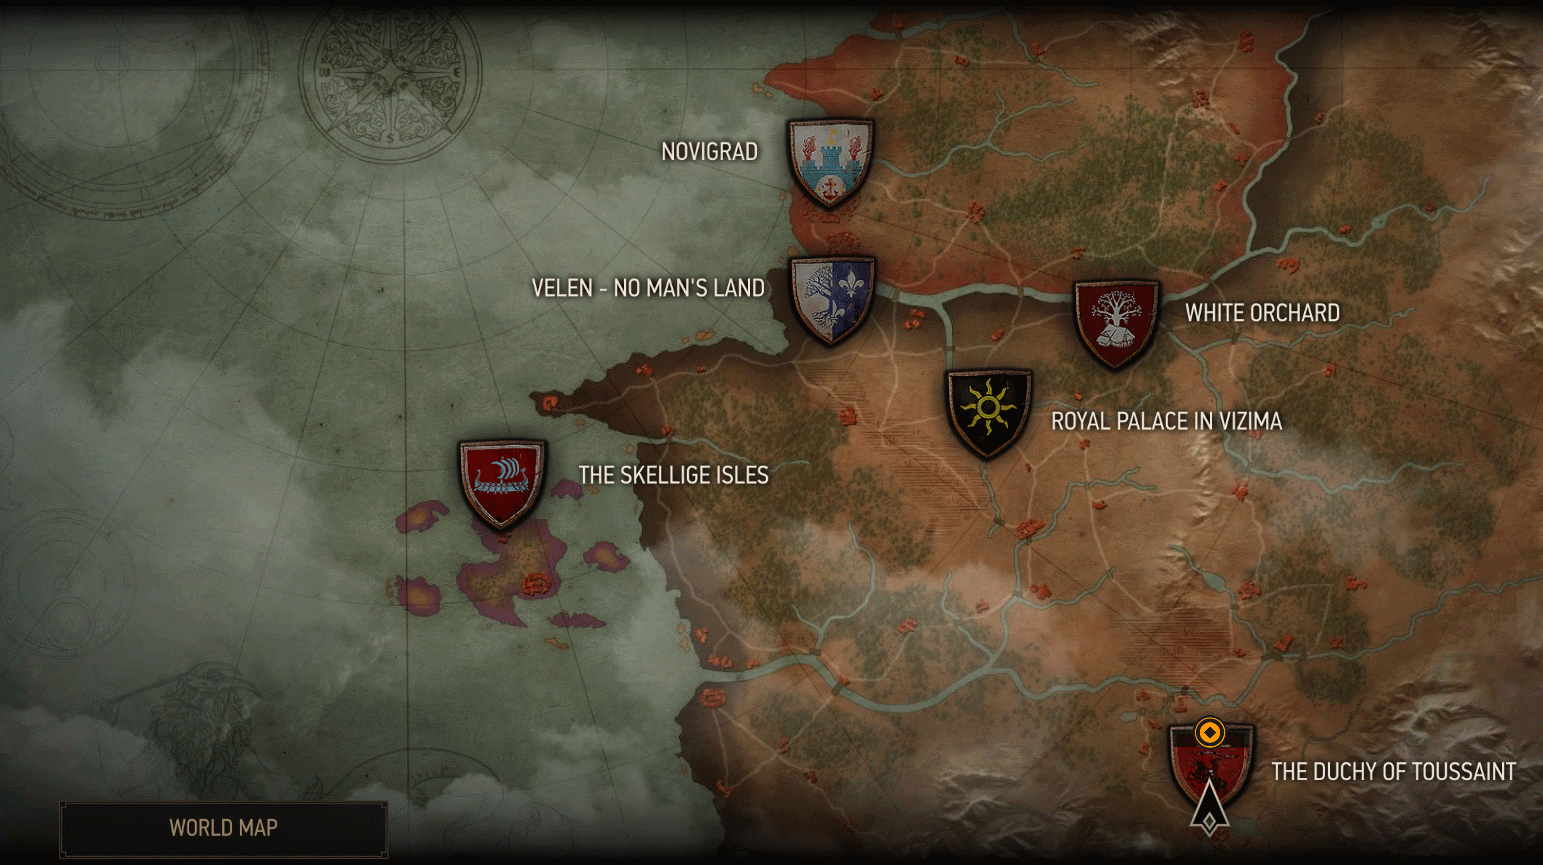 Steam Community :: Guide :: The Witcher 3 Set - Complete Maps